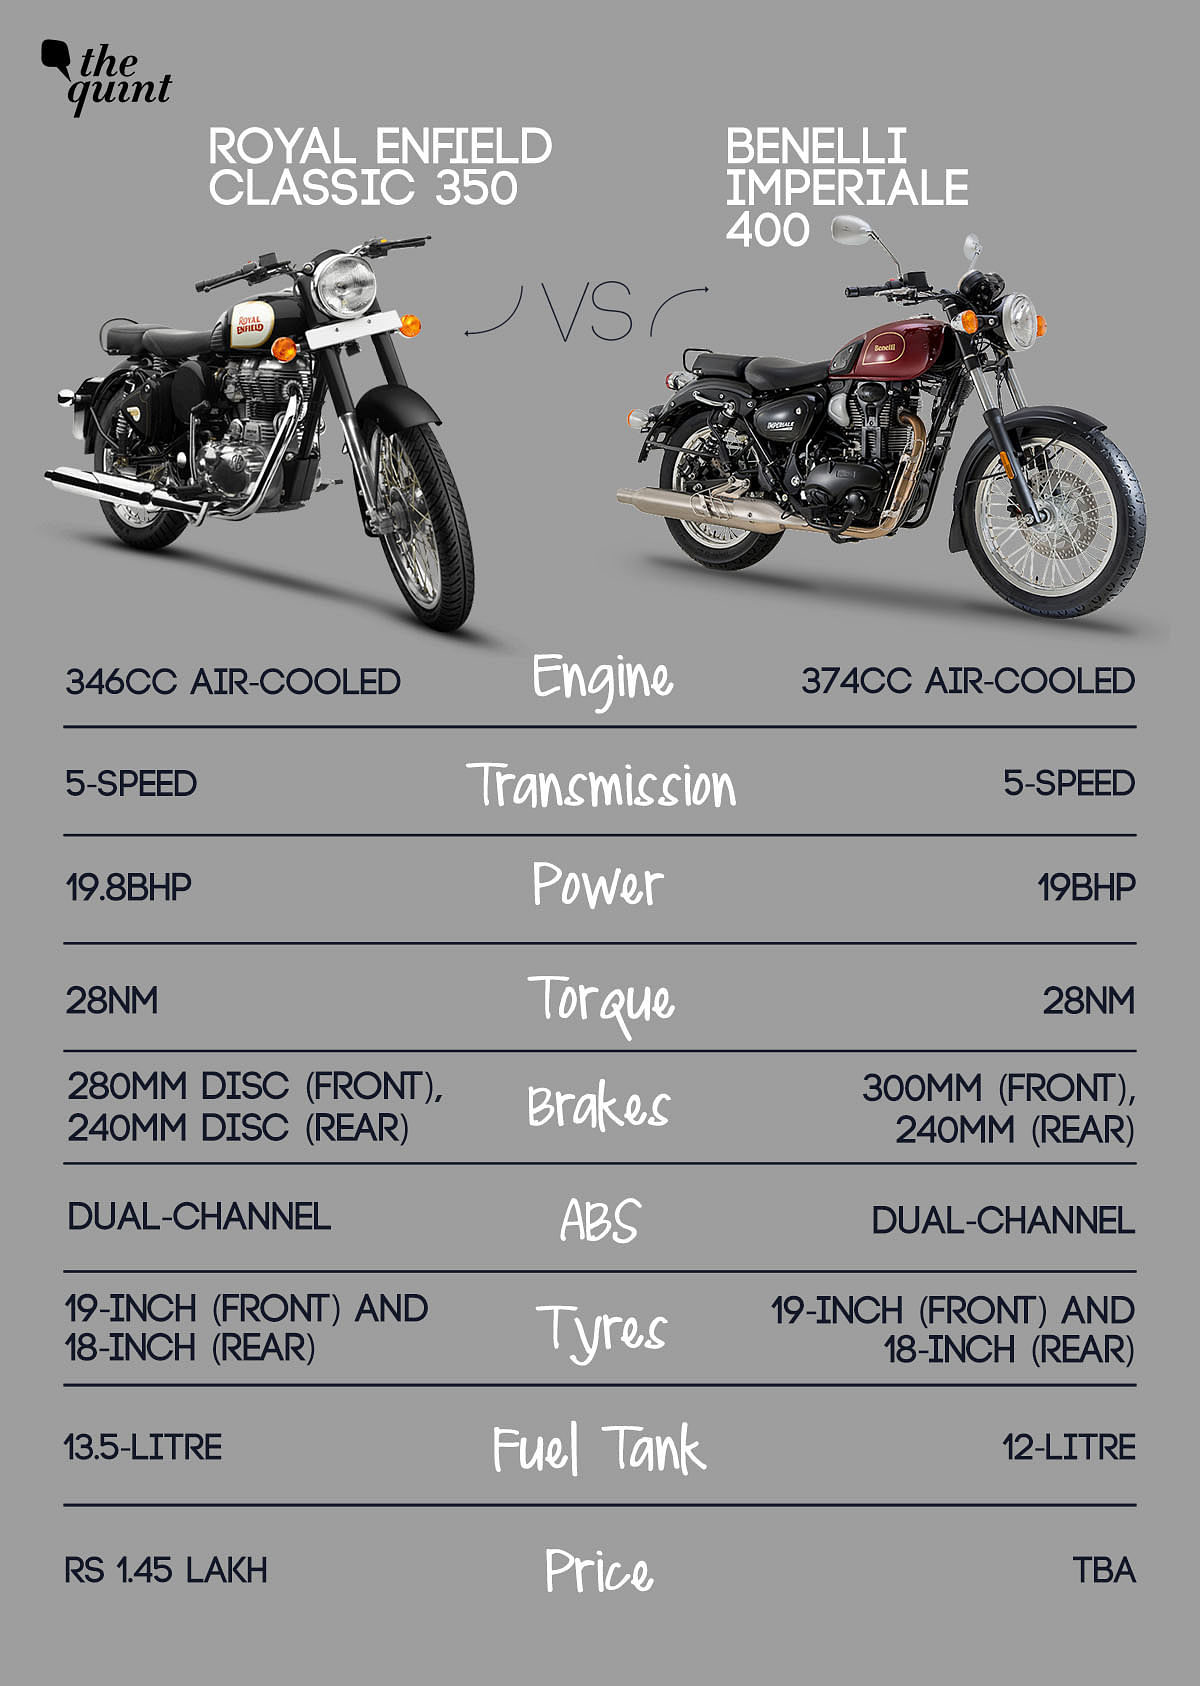 Benelli Imperiale 400: Can This Rival Royal Enfield Classic 350?